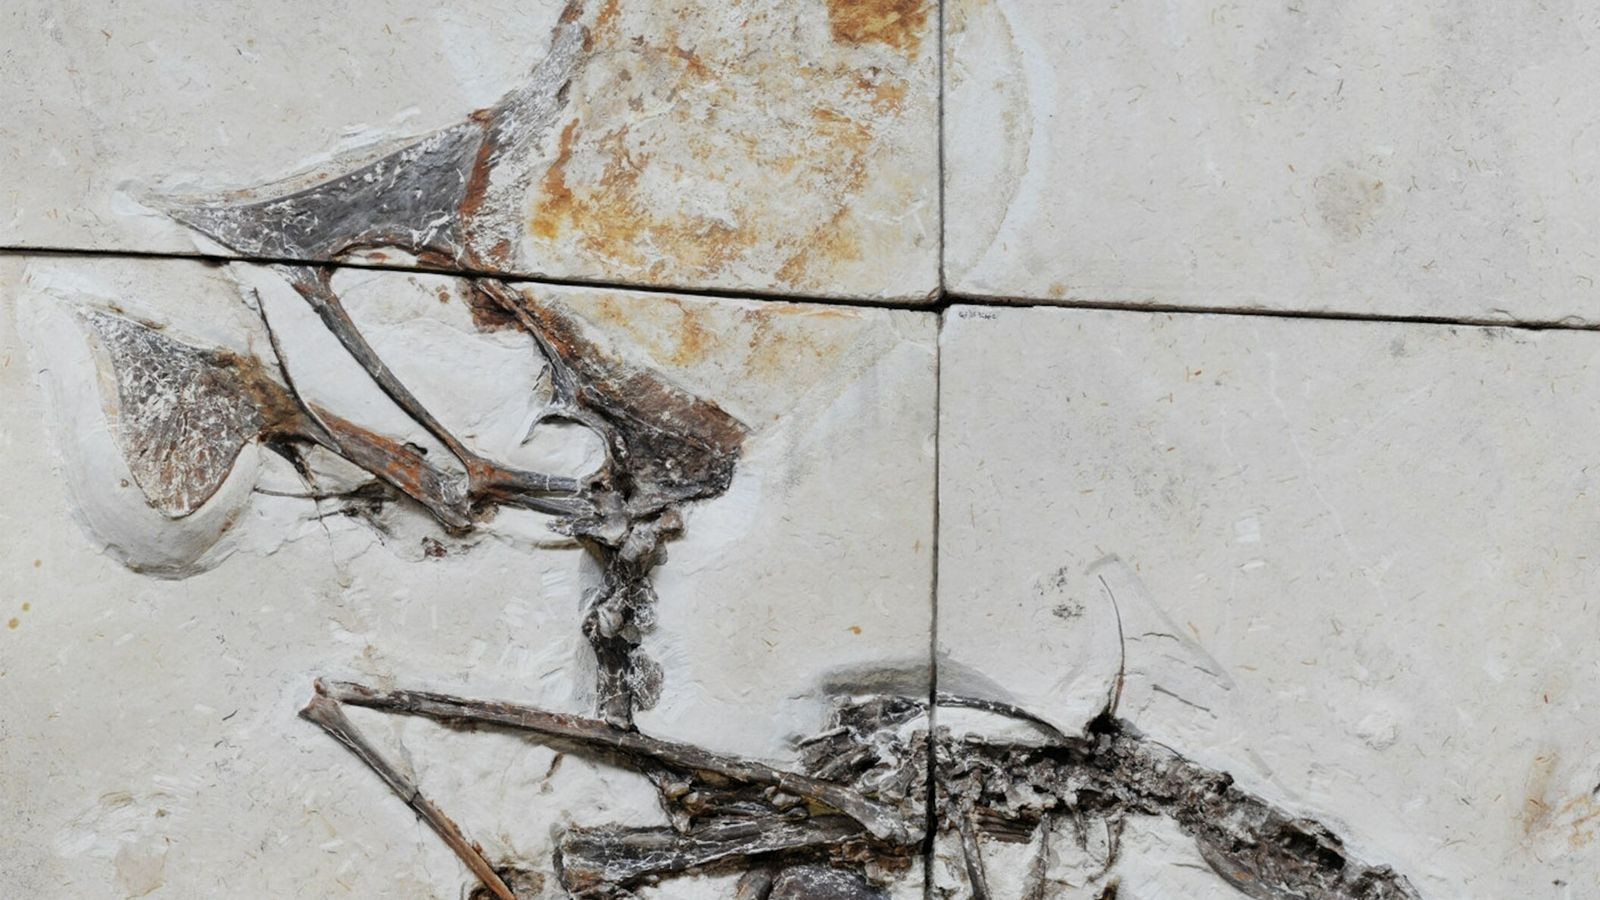 Entombed in limestone blocks, the newly studied fossil is the first nearly complete skeleton of a ...